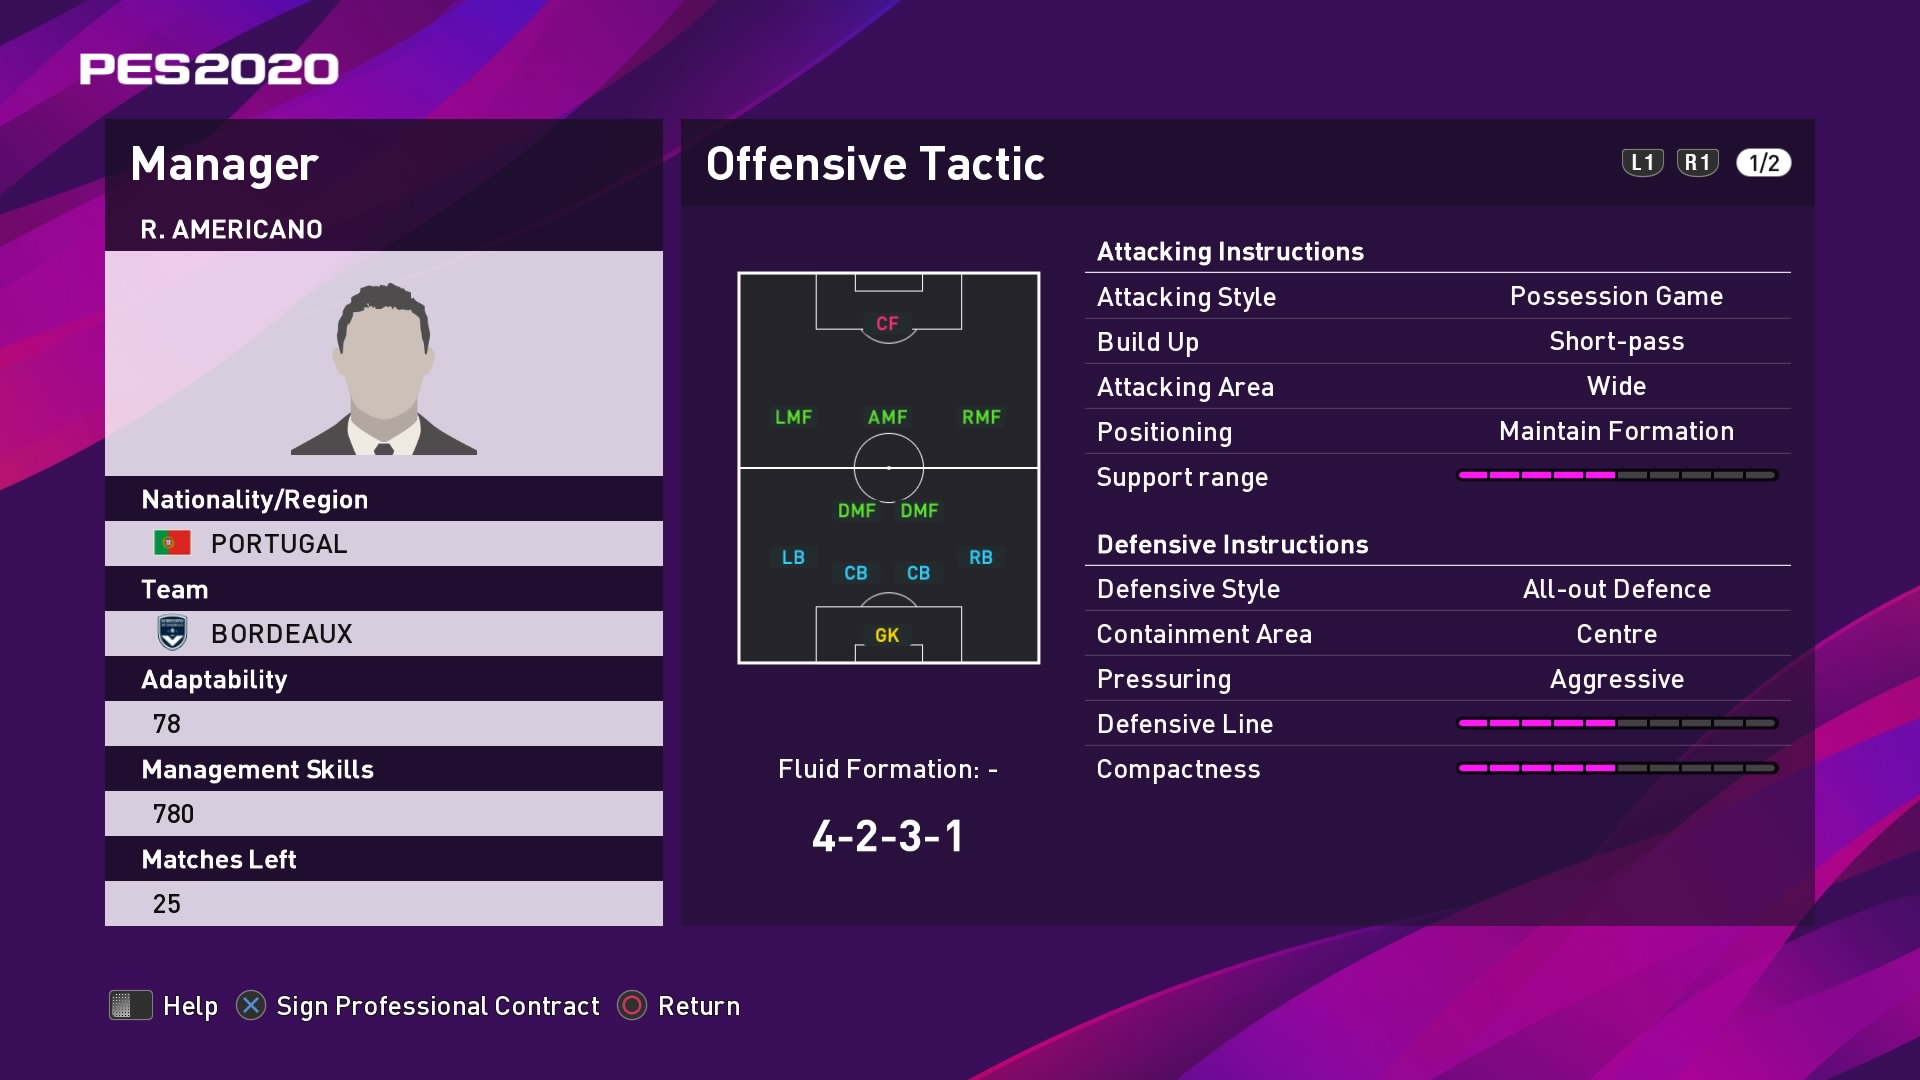 R. Americano (Paulo Sousa) Offensive Tactic in PES 2020 myClub